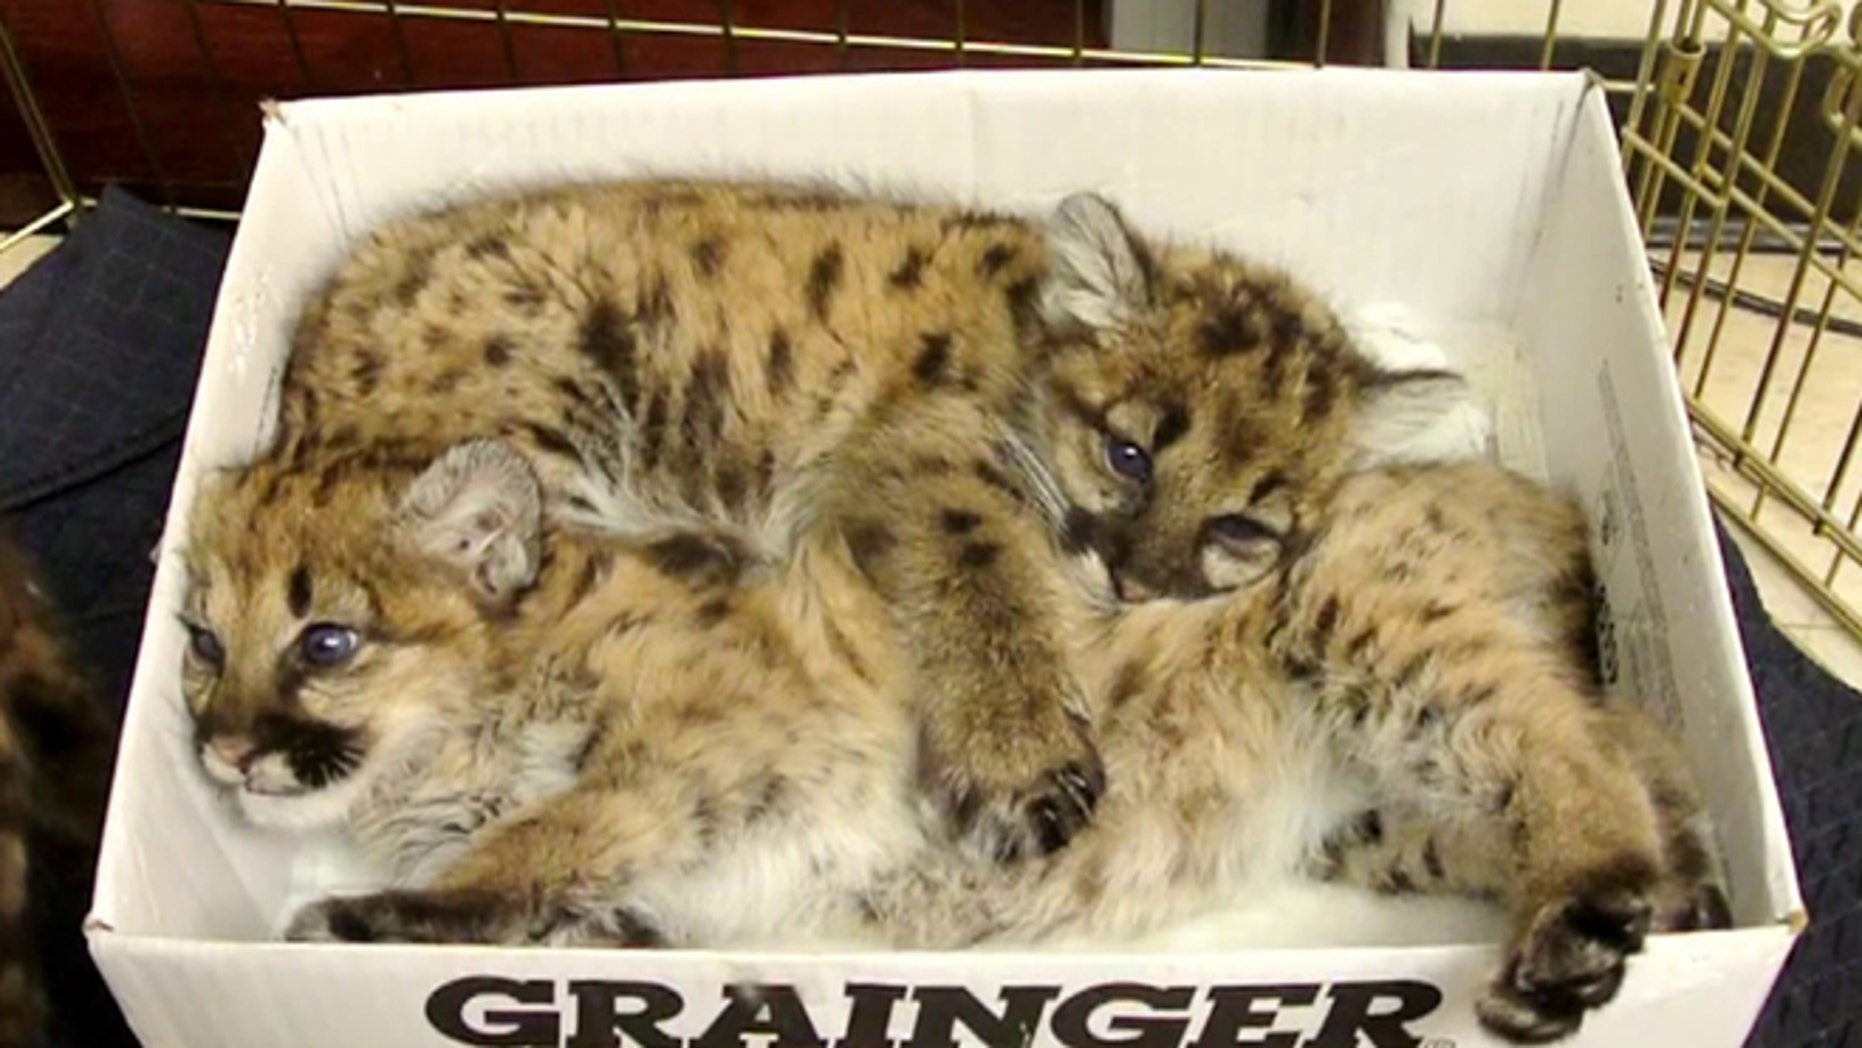 Two baby mountain lions are pictured after California wildlife officials rescued them from the wild. Their mother died and the kittens were fending for themselves, but they will now be cared for by zoos in Kansas and Texas.